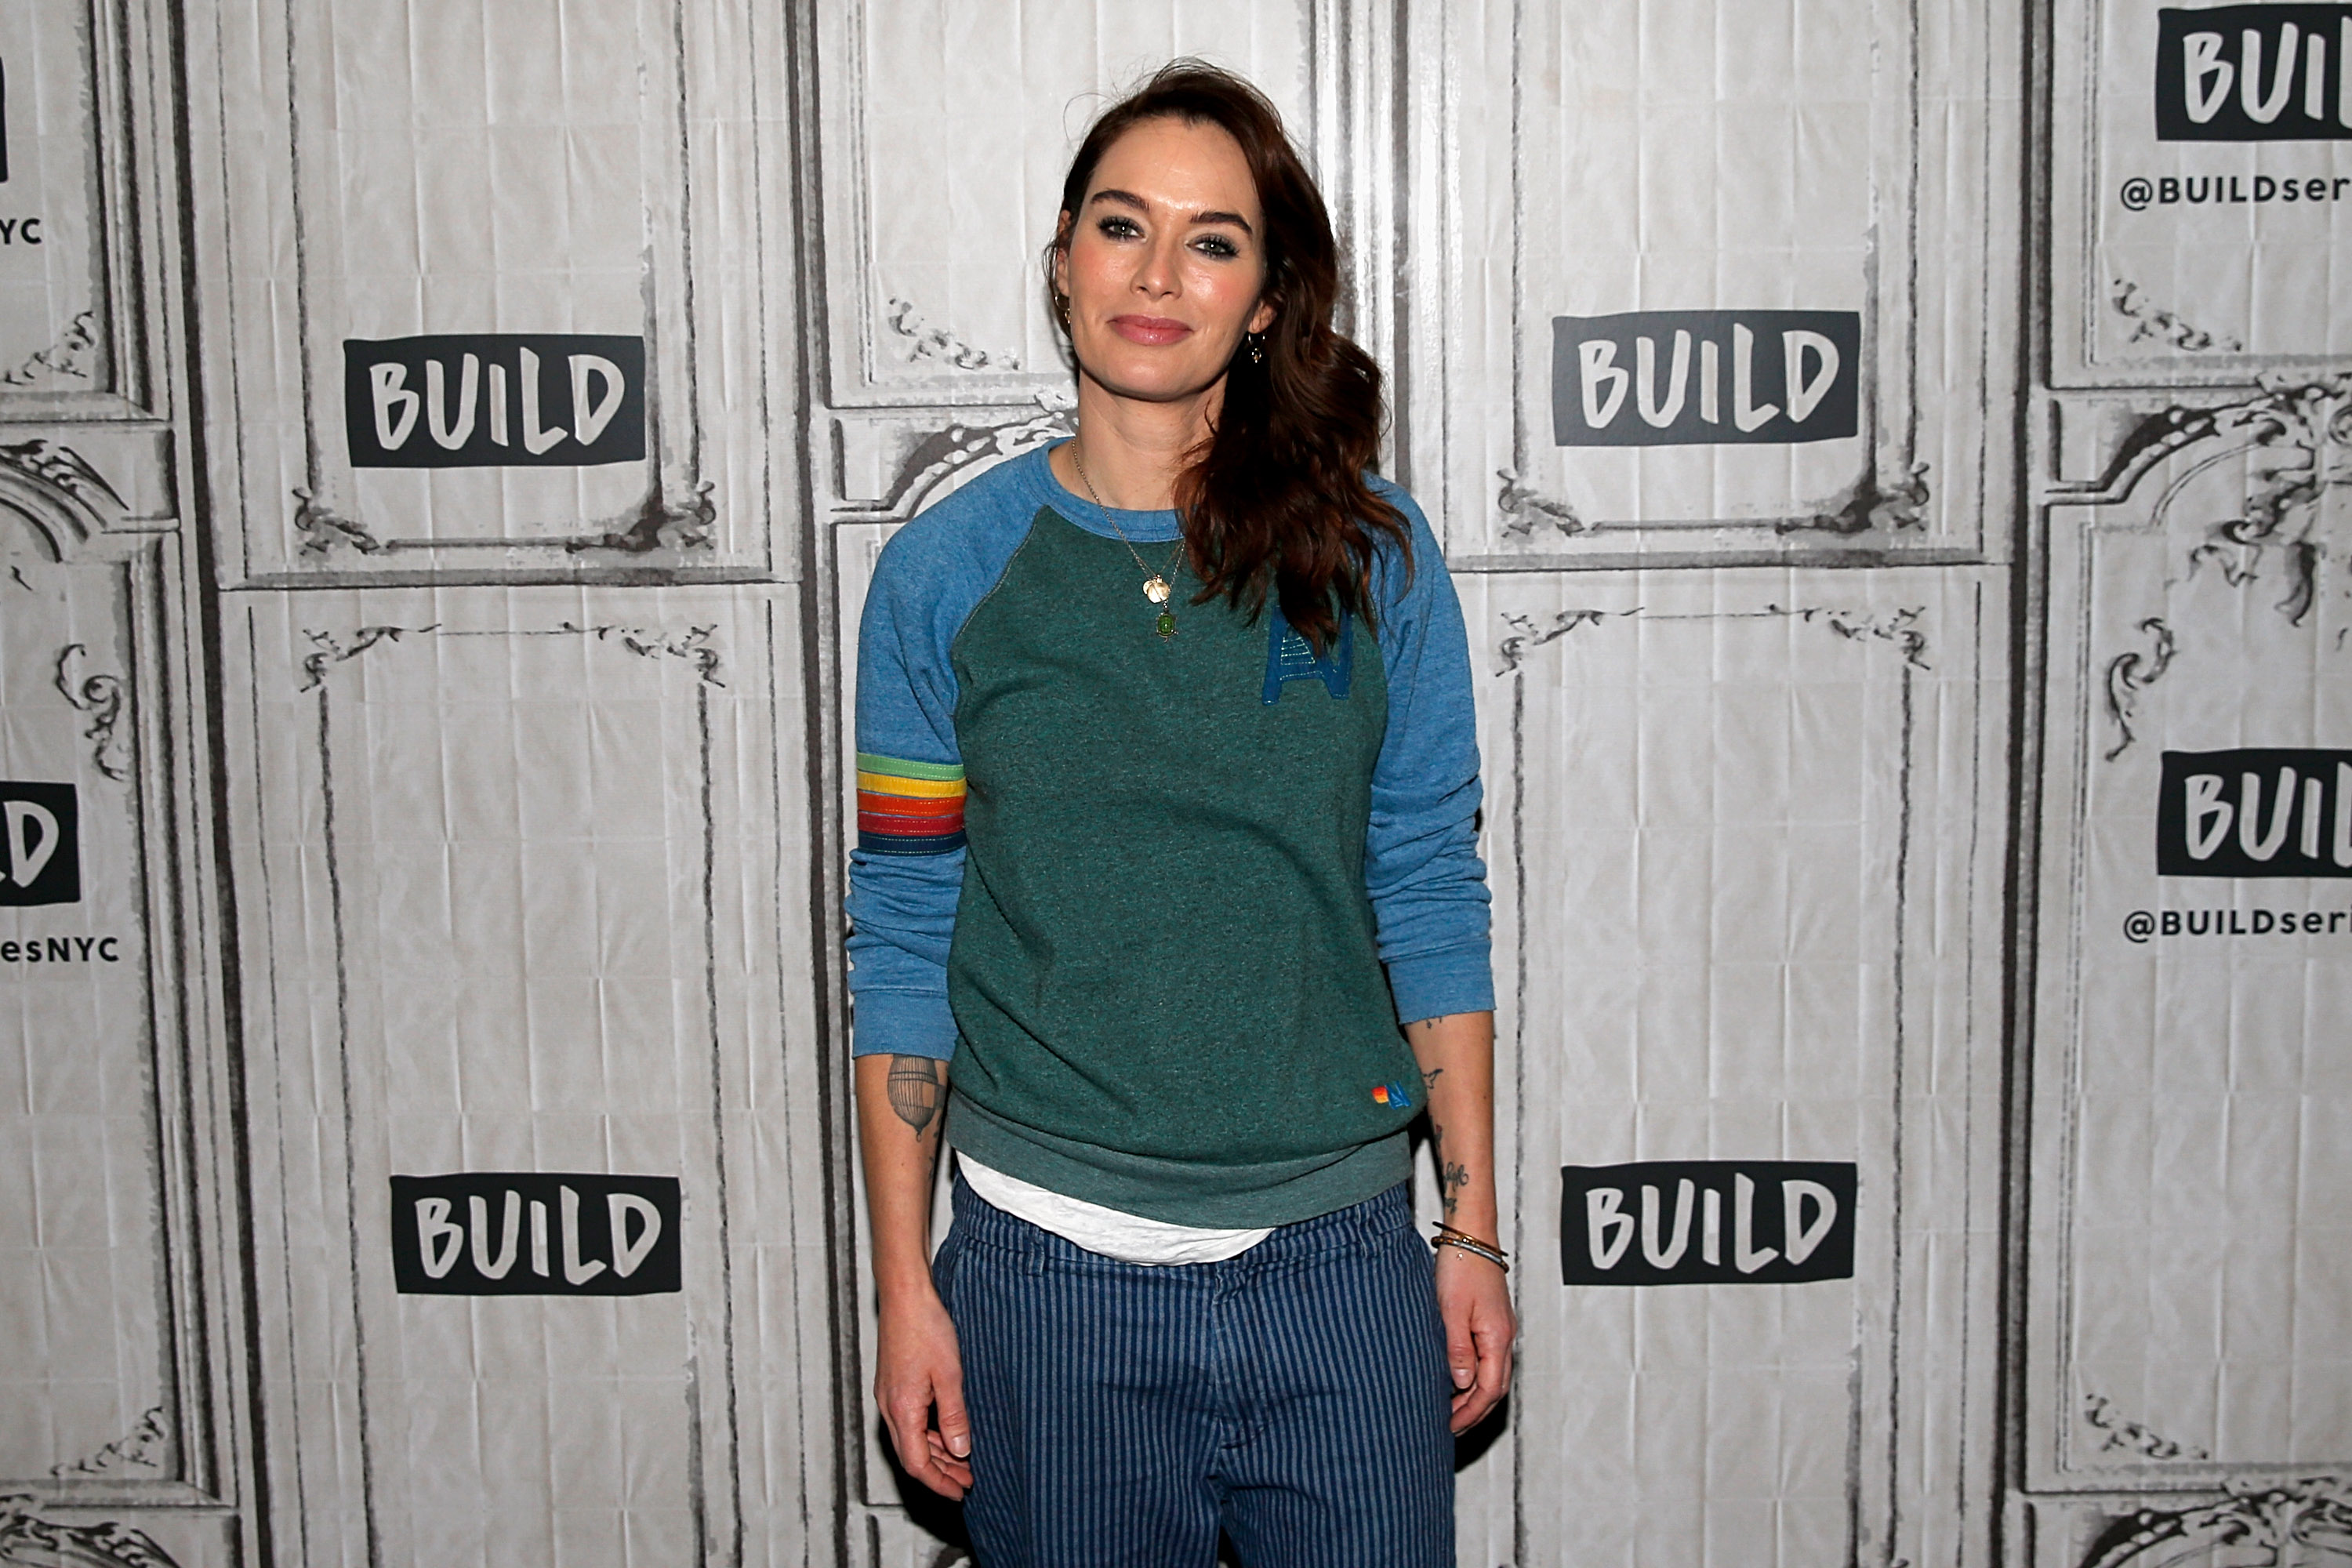 Lena Headey attends Build Series to discuss 'Fighting with My Family' at on February 11, 2019 in New York City. (Photo by Dominik Bindl/Getty Images)